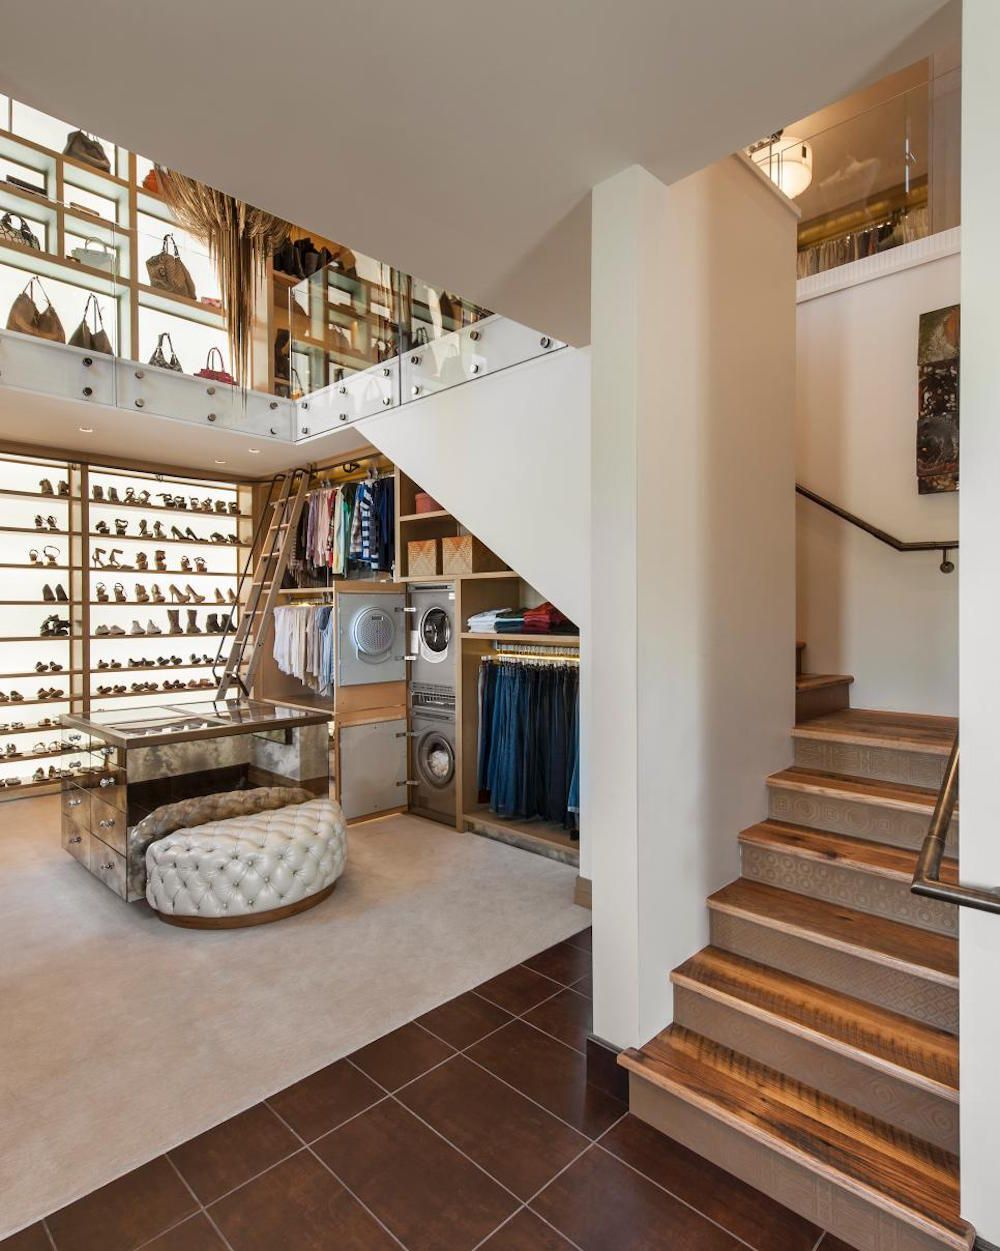 LED Light Paneled Walls In This Two Story Walk In Closet Light  Floor To Ceiling Shelves That Show Off An Extensive Collection Of Shoes And  Handbags.